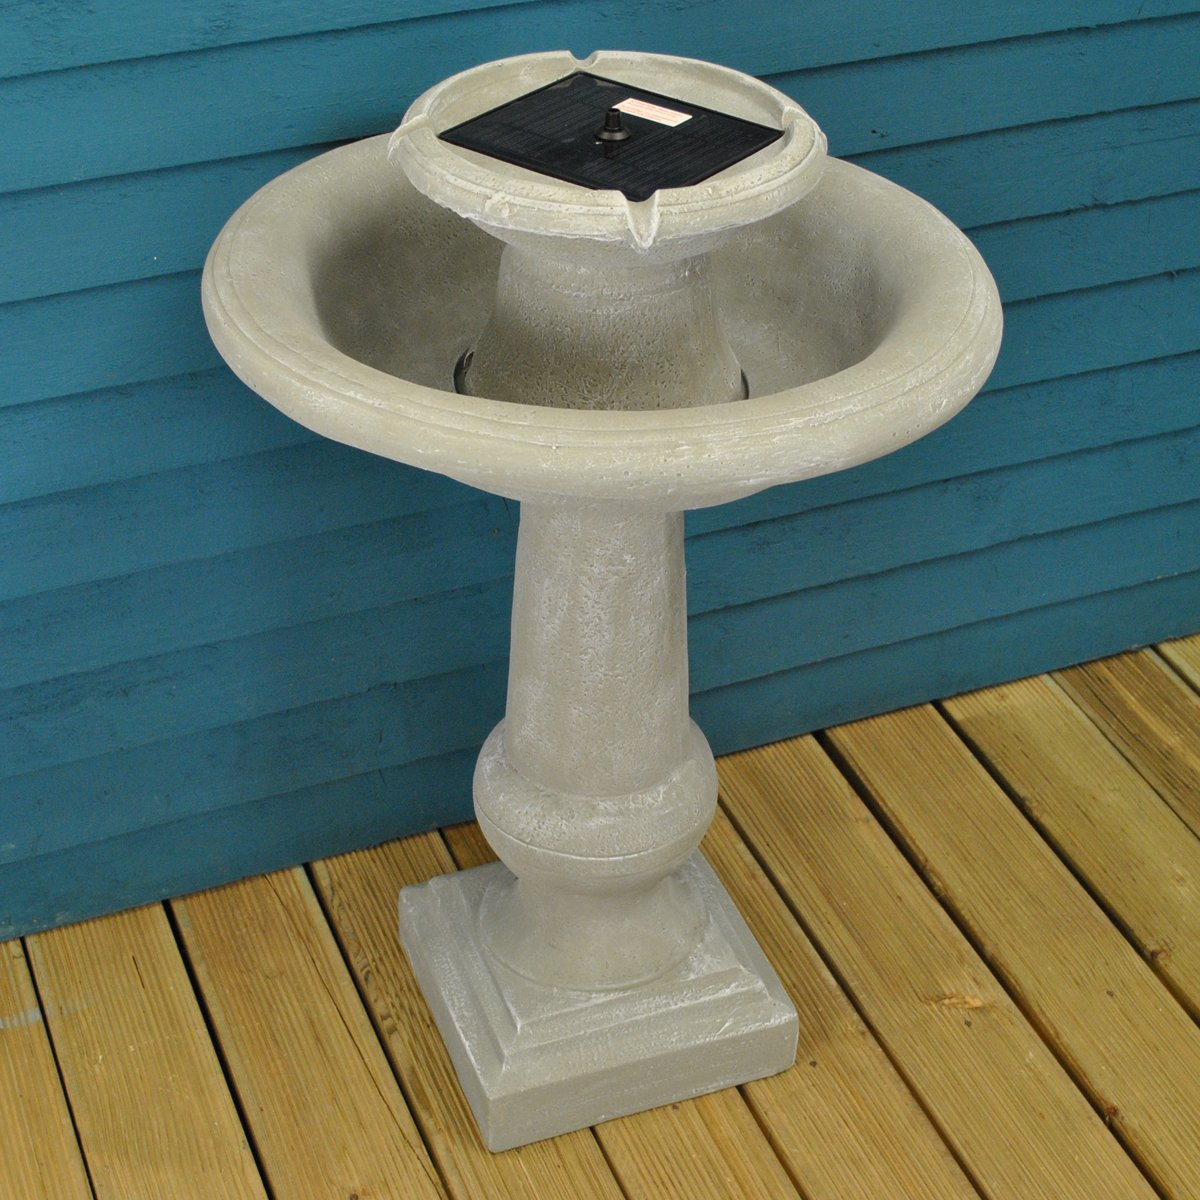 Chatsworth Fountain Outdoor Water Feature (Solar) by Smart Solar